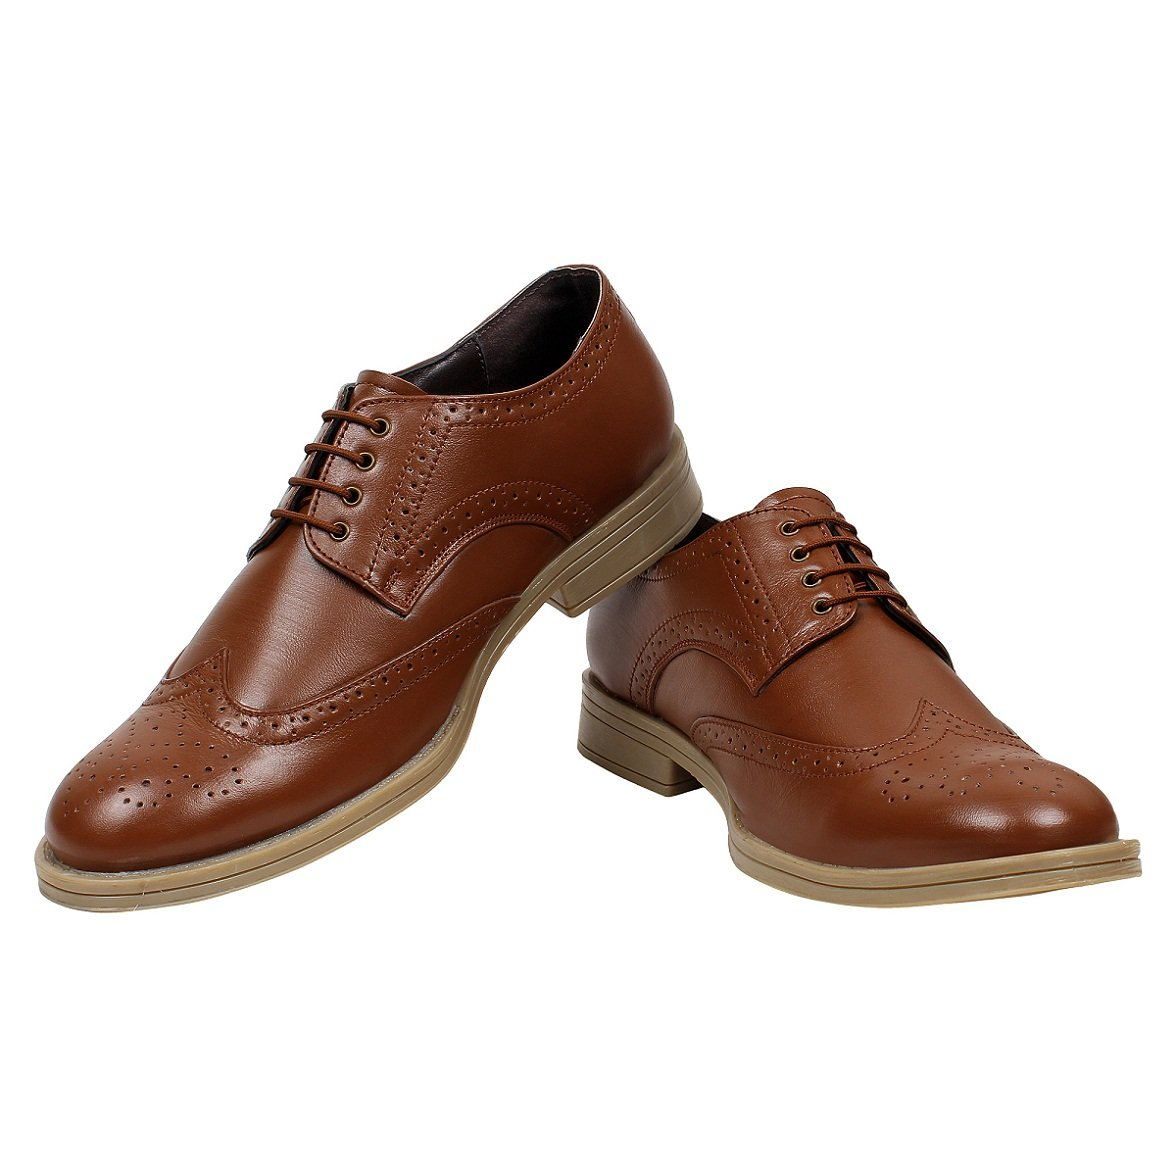 SeeandWear Tan Best Brogue Shoes For Men - SeeandWear